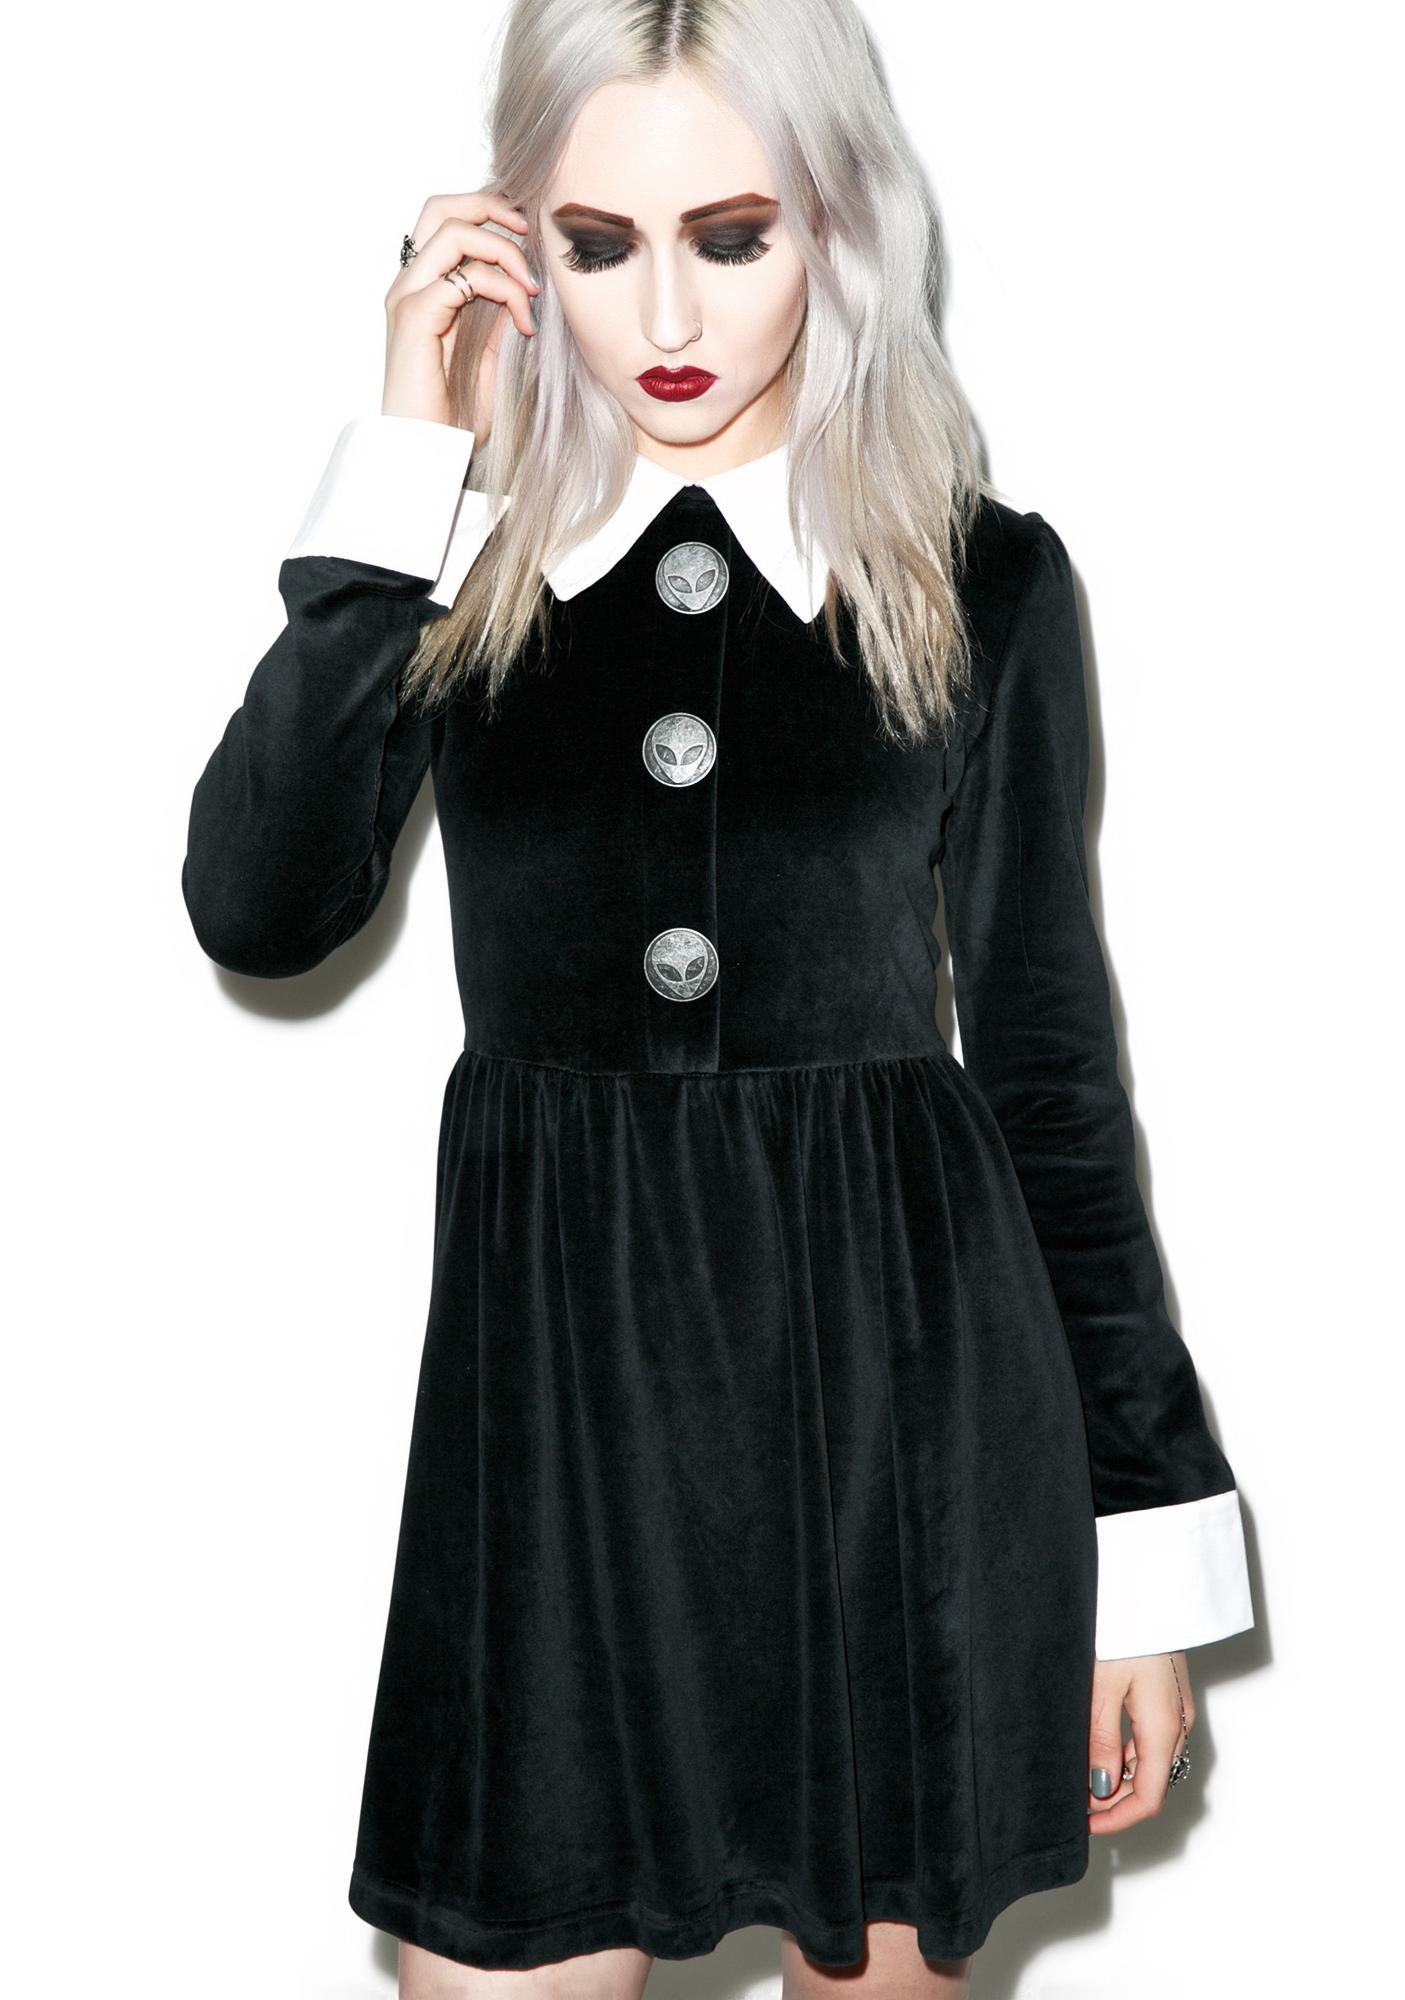 Disturbia Rosemary Valour Dress